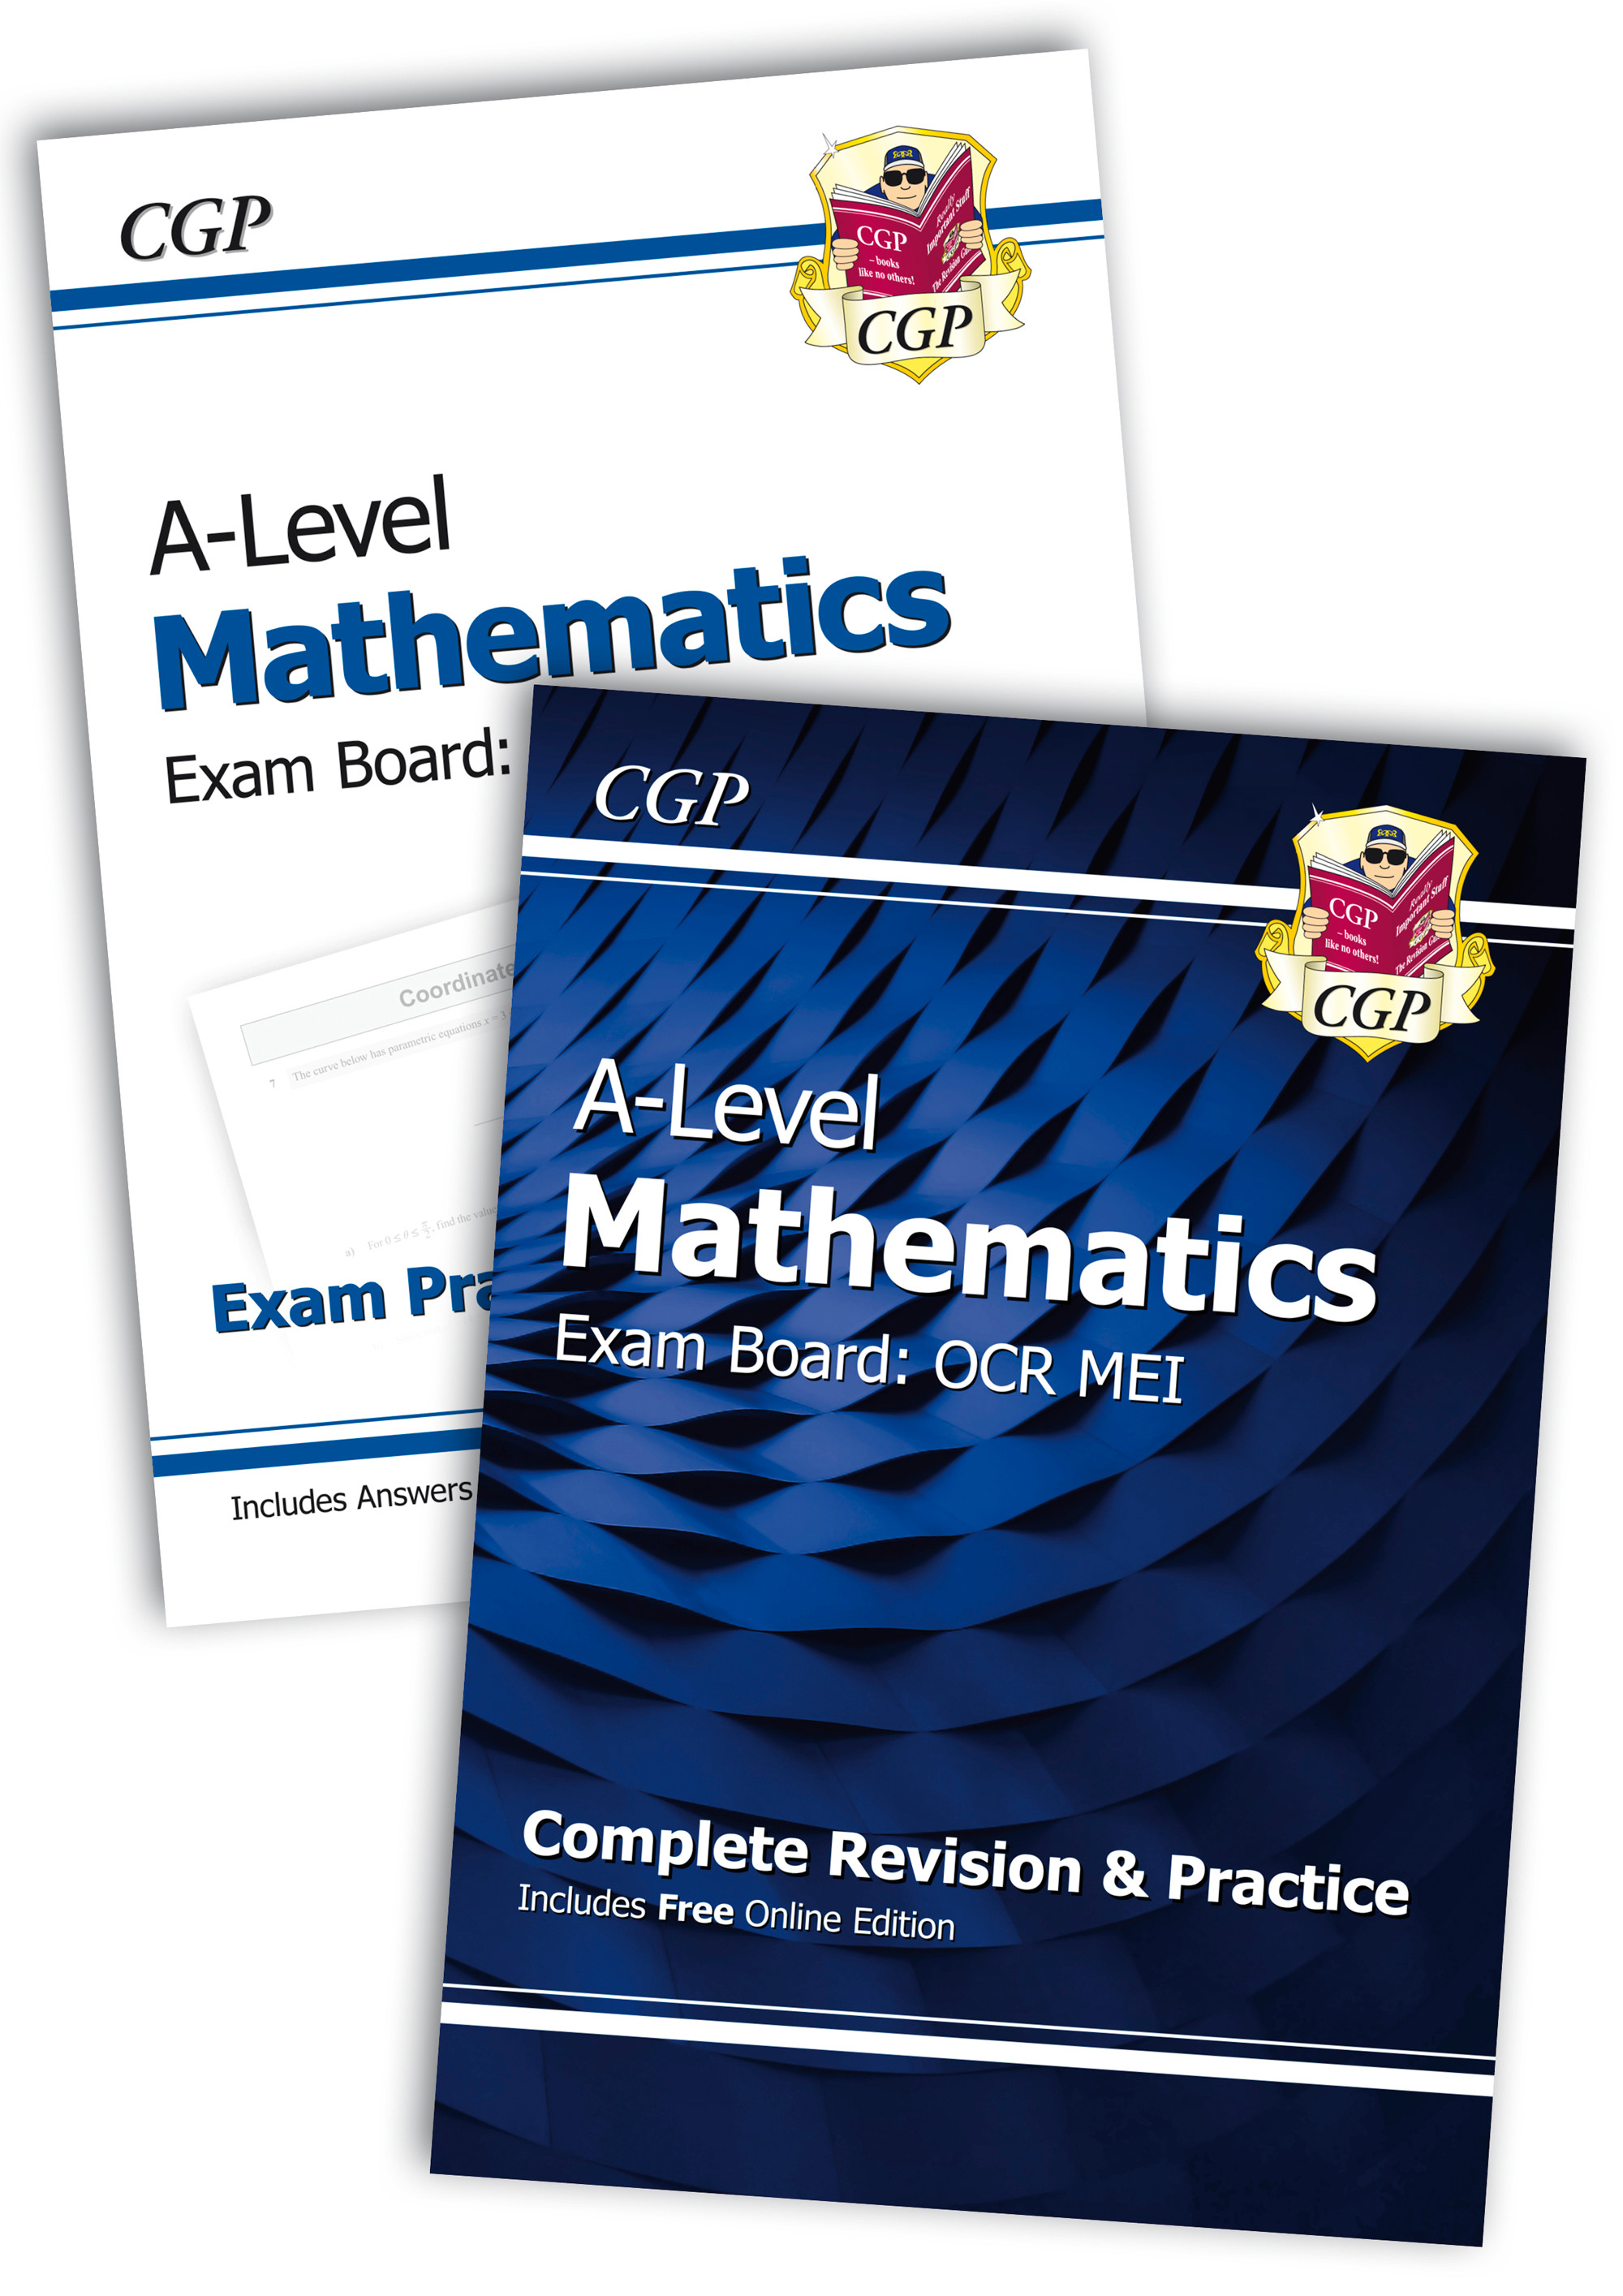 MRMB71 - Complete Revision and Exam Practice A-Level Maths Bundle: OCR MEI Year 1 & 2